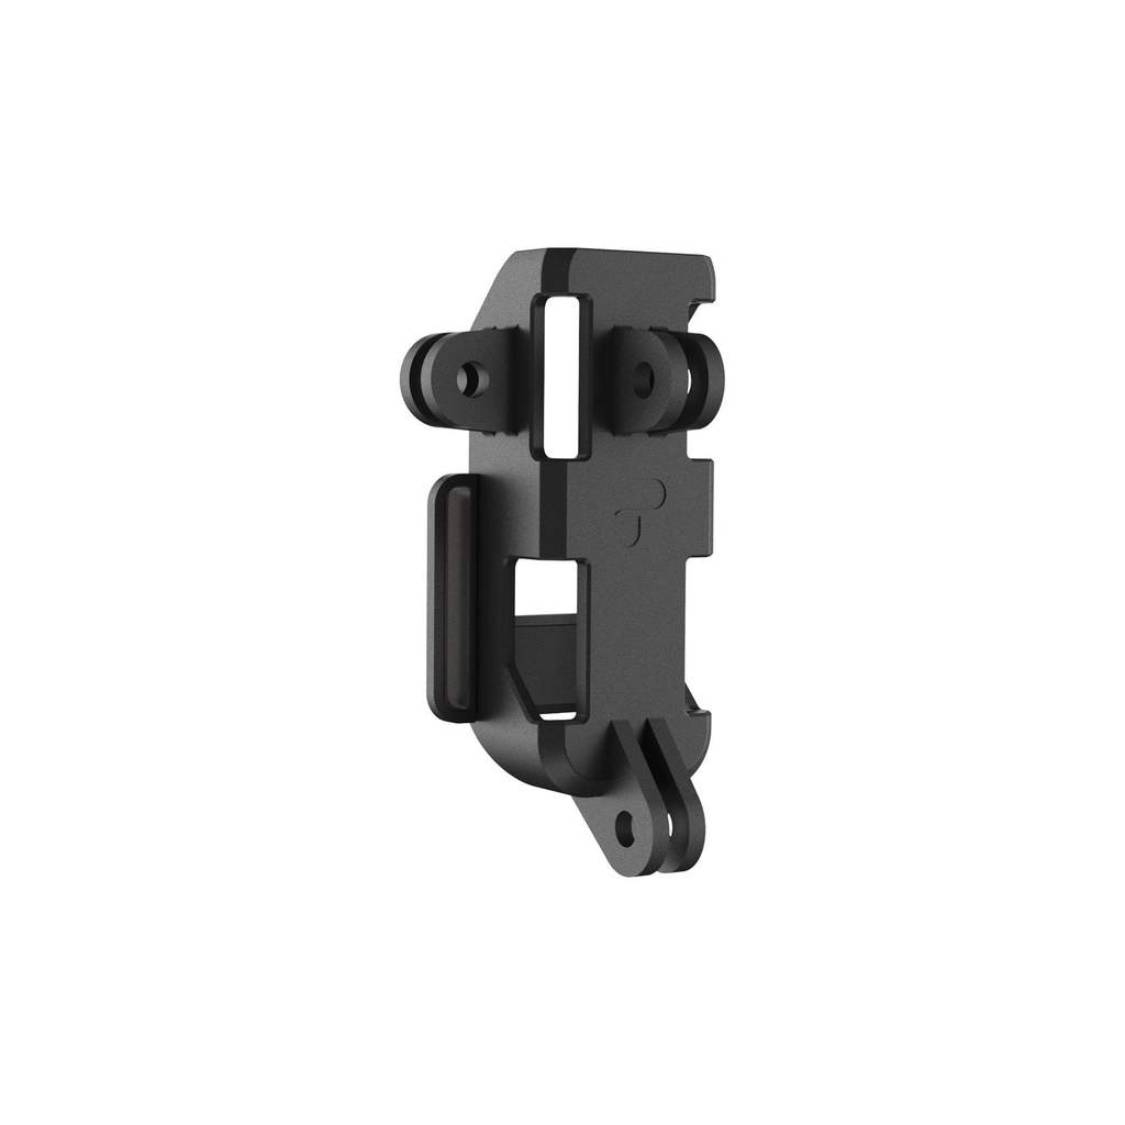 PolarPro Osmo Pocket Action Mount